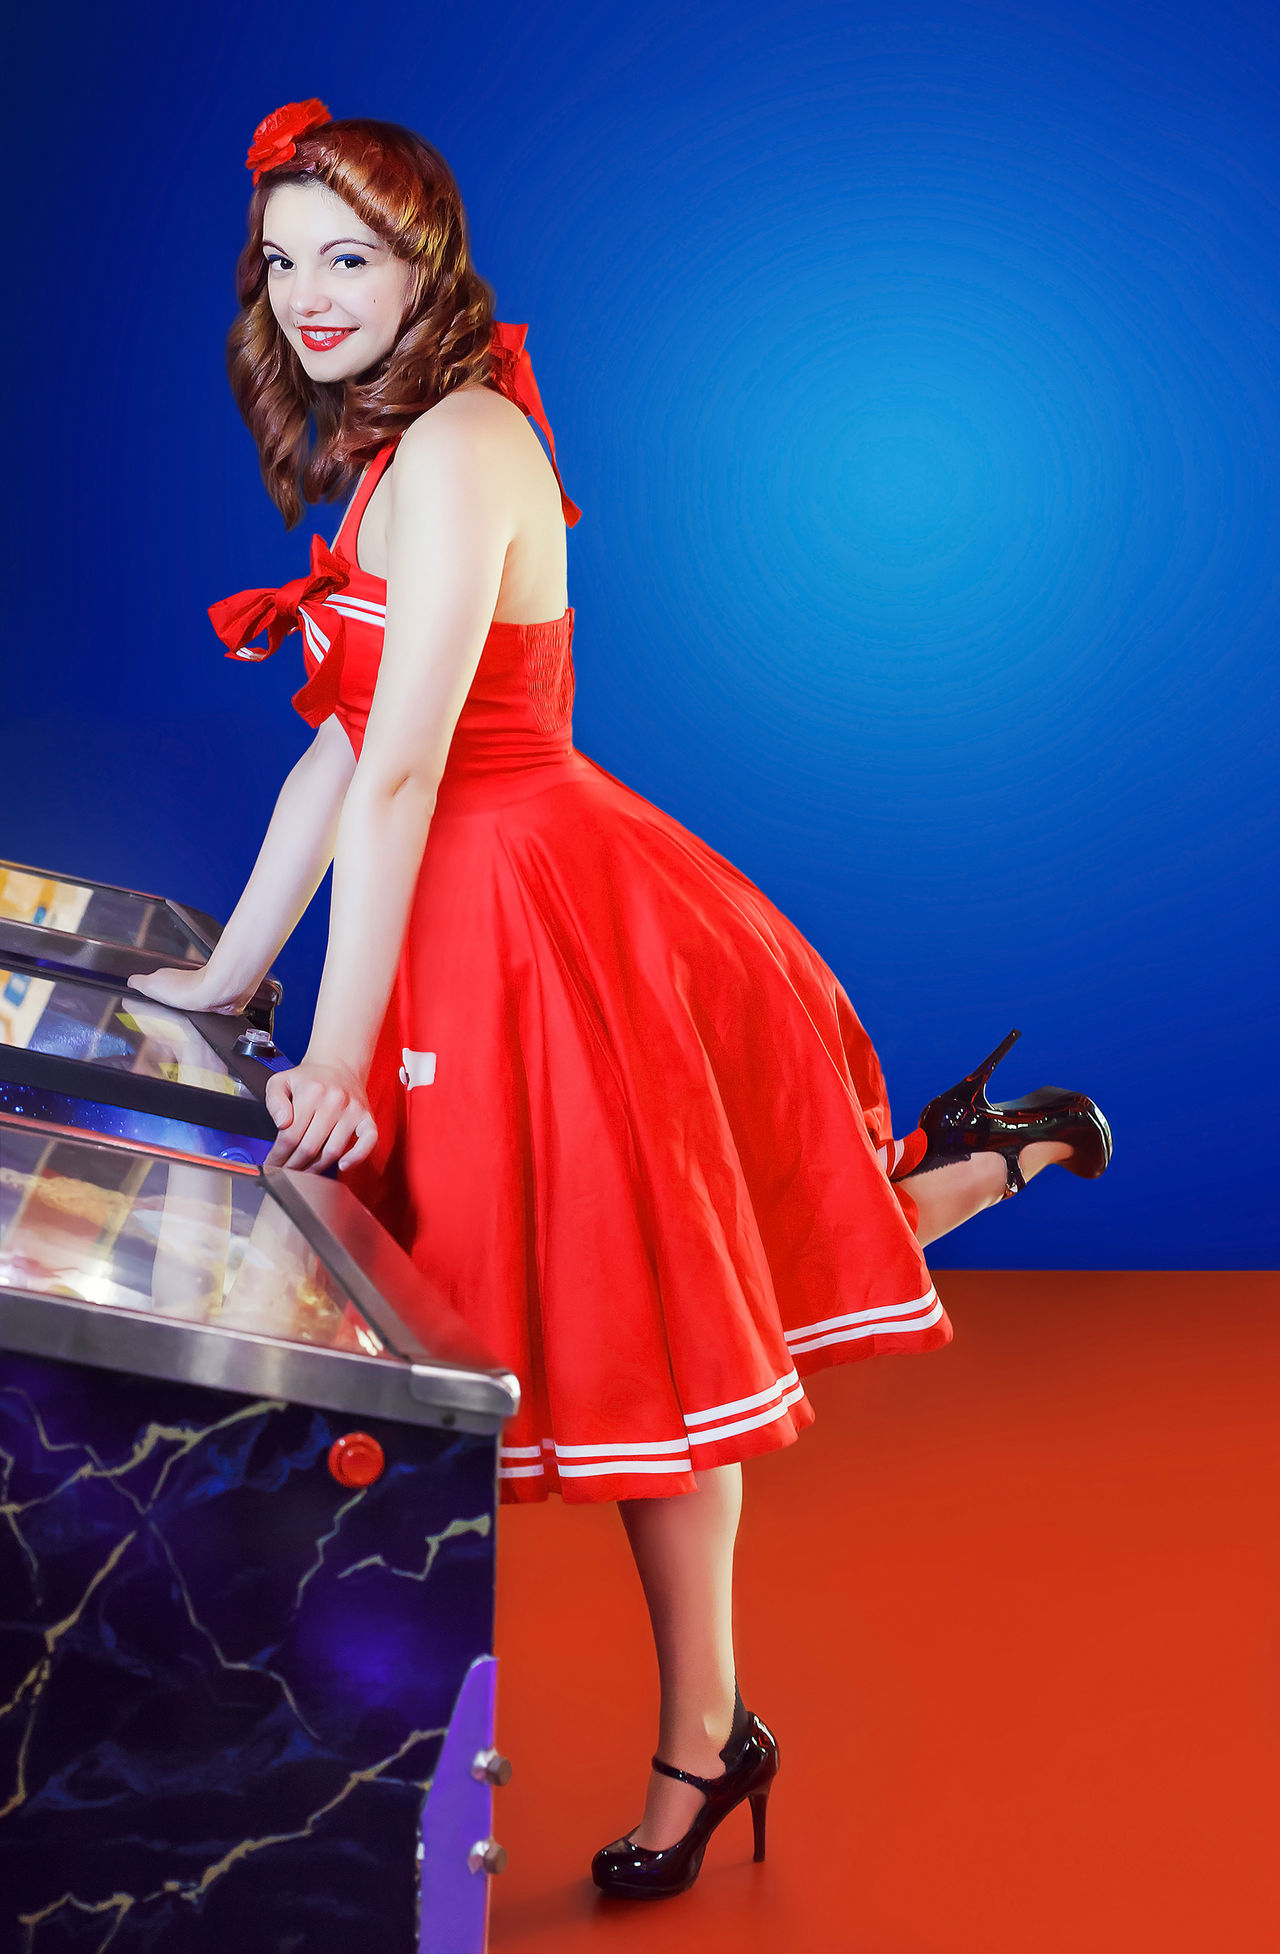 Girl in red dress pin up style, play pinball. Light blue background with space for additional text. Blue Background Fashion Flipper Hobbies Looking At Camera Pin-Up Photo Shoot Playing Games Portrait Red Dress Vintage Women Young Adult Young Women